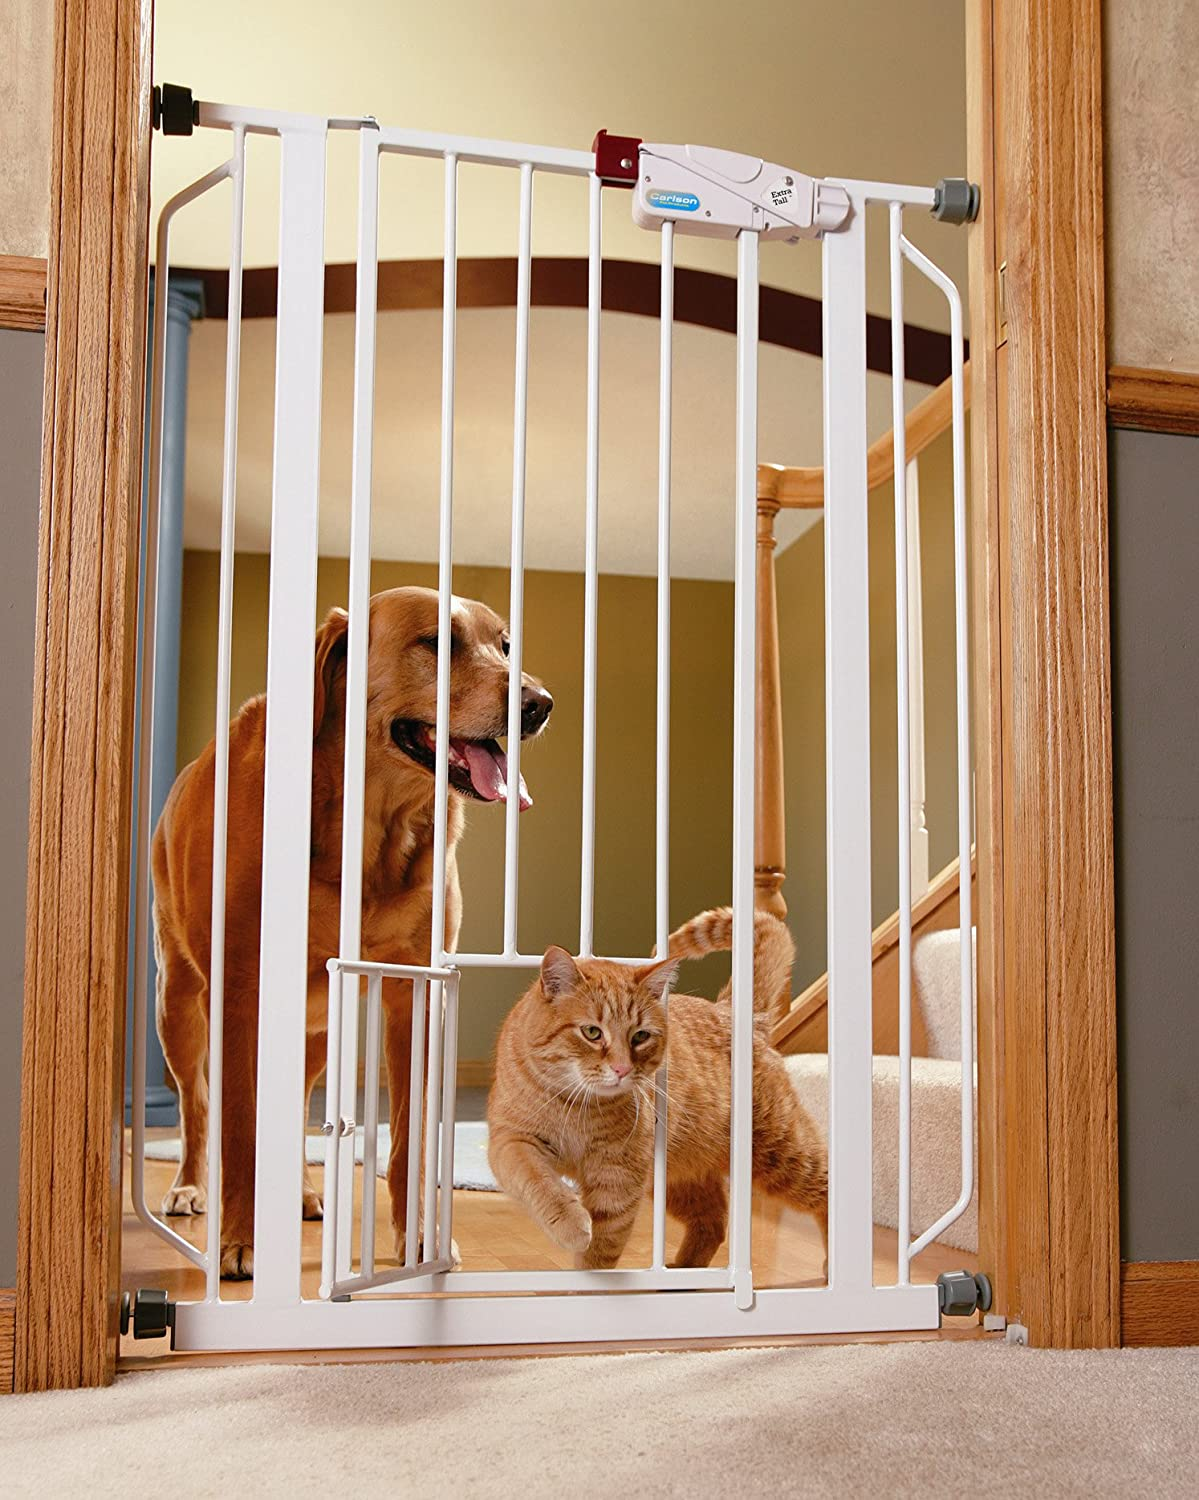 Amazon.com : Carlson Extra Tall Pet Gate, with small pet door ...